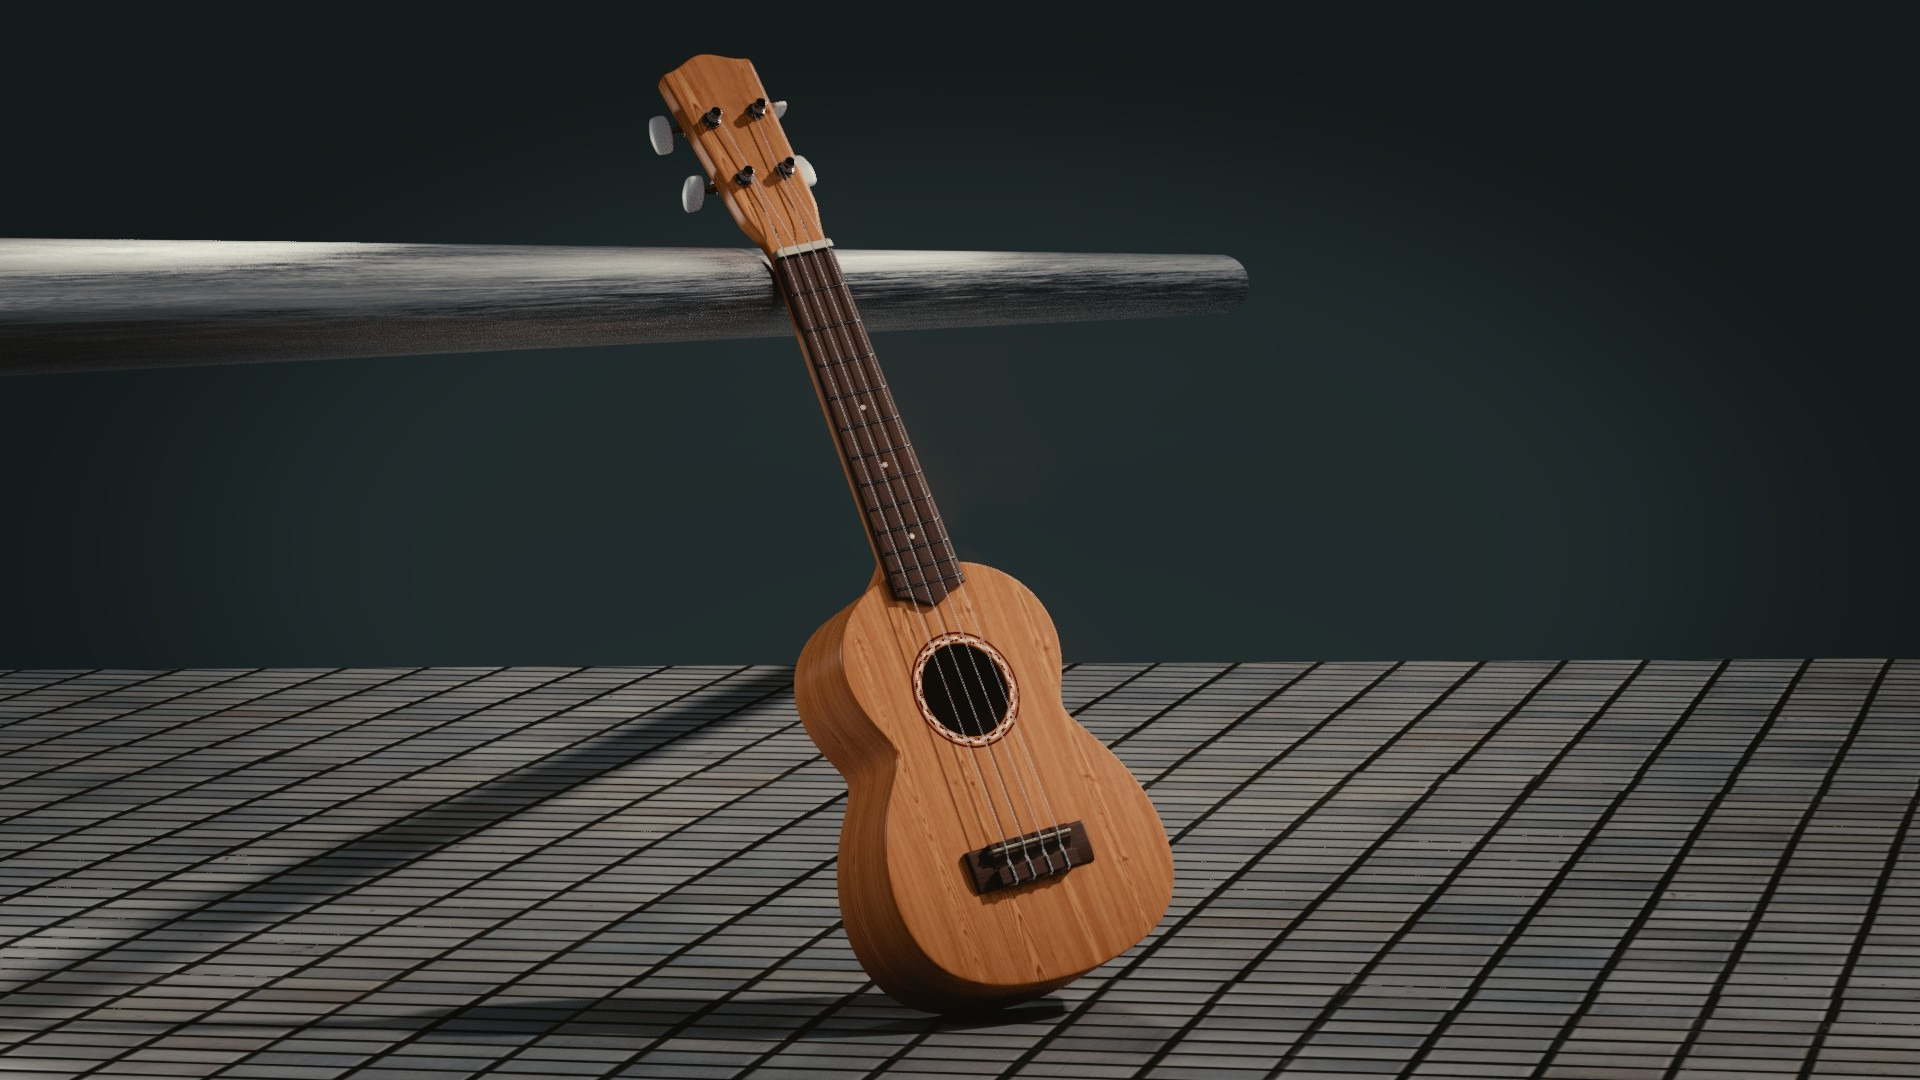 1920x1080 Preview wallpaper guitar, 3d, space, musical instrument